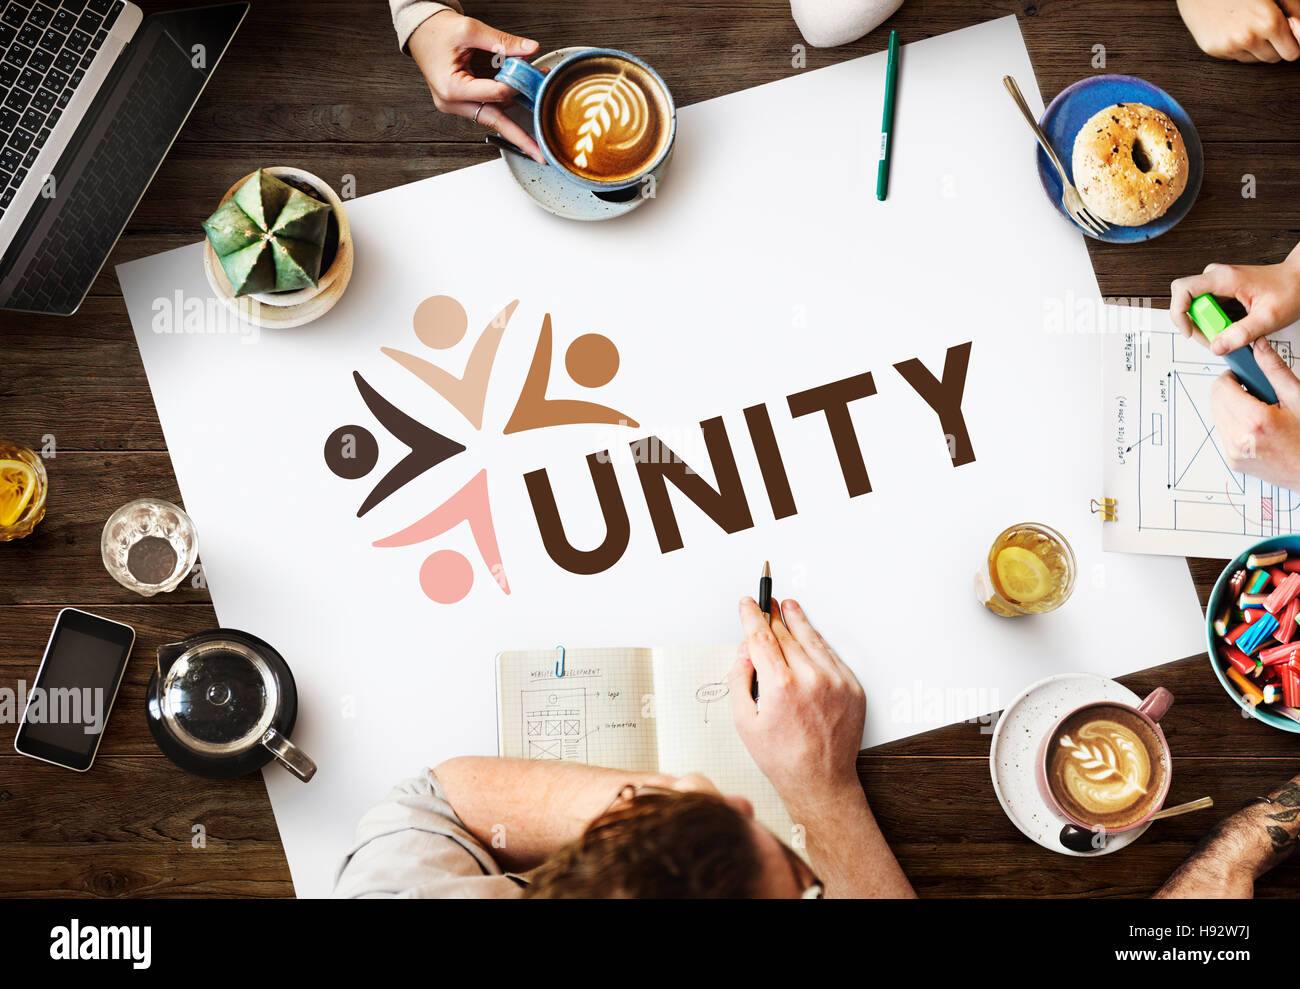 Variety Unity Treatment Togetherness Graphic Concept - Stock Image